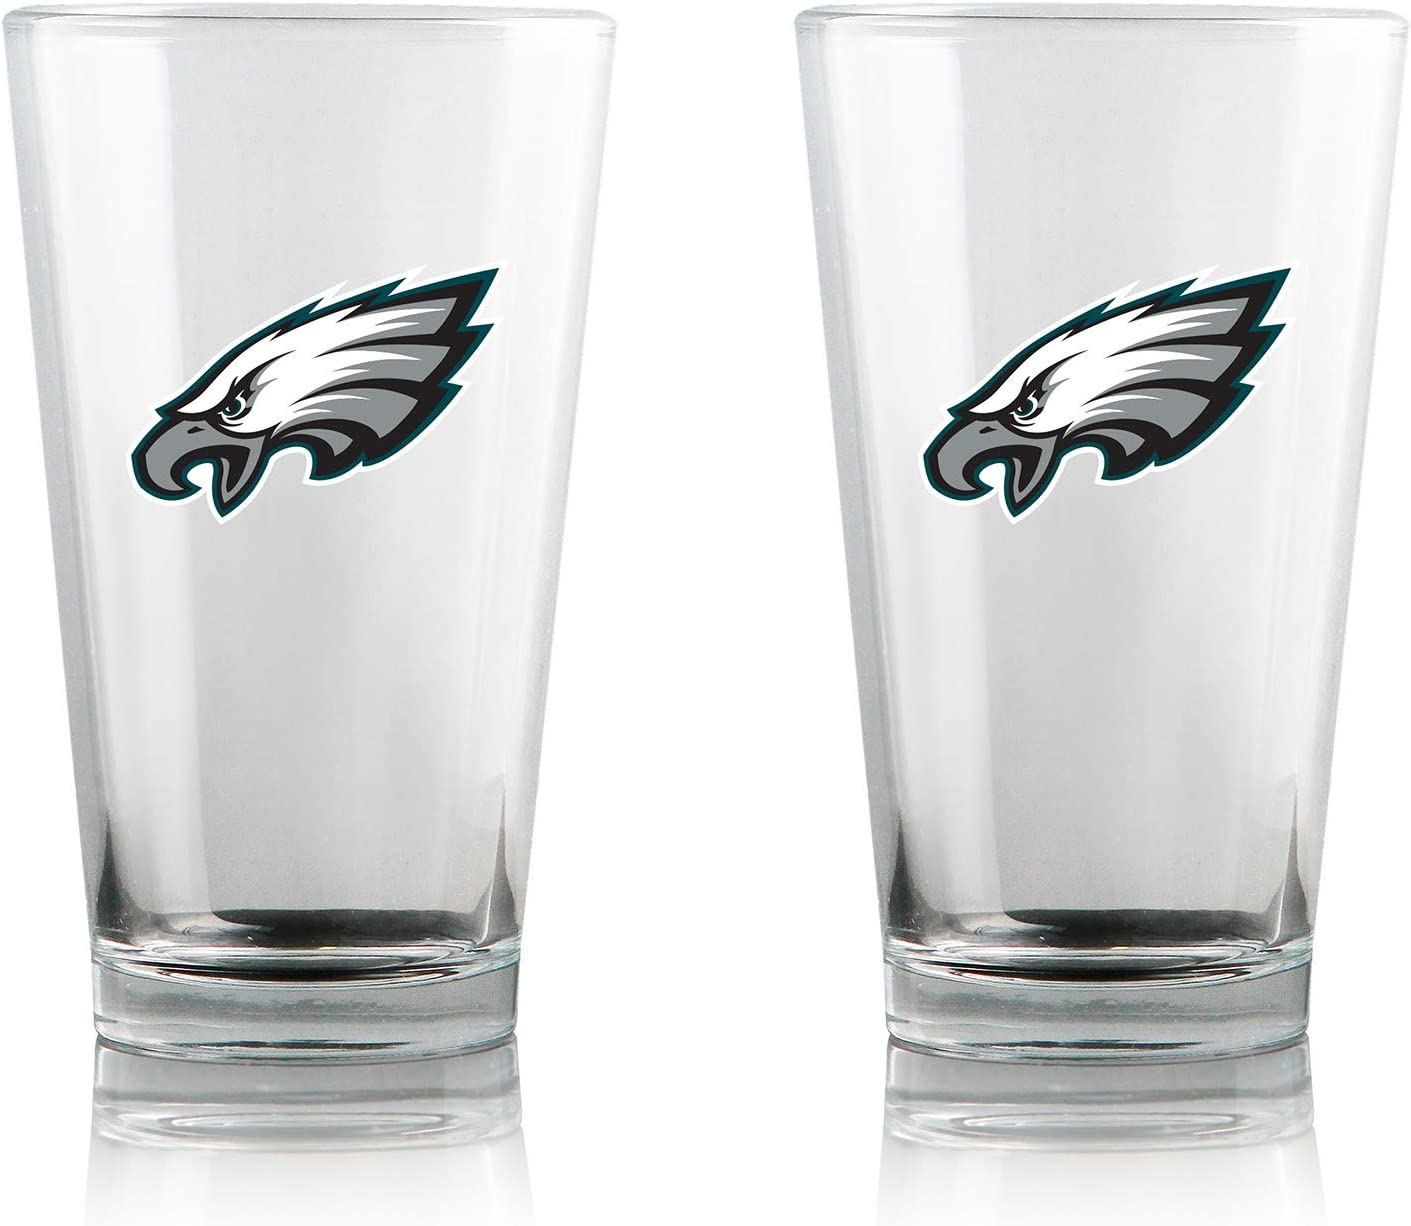 Duck House NFL Clear Highball Pint Glasses | Premium Glassware | Lead-Free | BPA-Free | 16oz | Set of 2